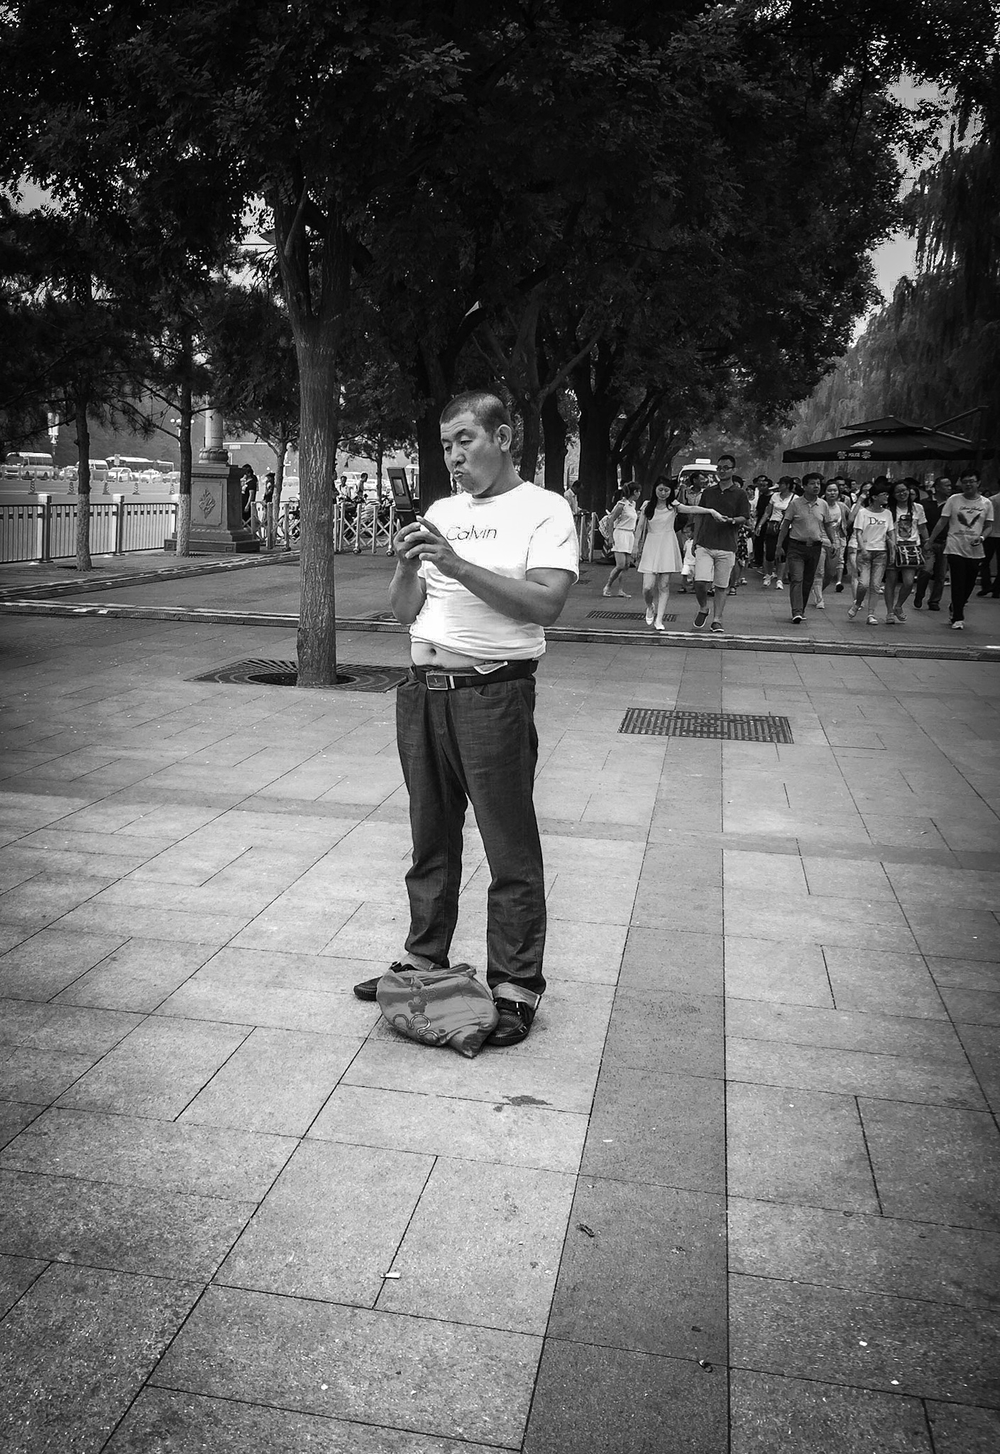 calvin---iphone-6-shot-and-edited--beijing-china-2015_21156852726_o.jpg